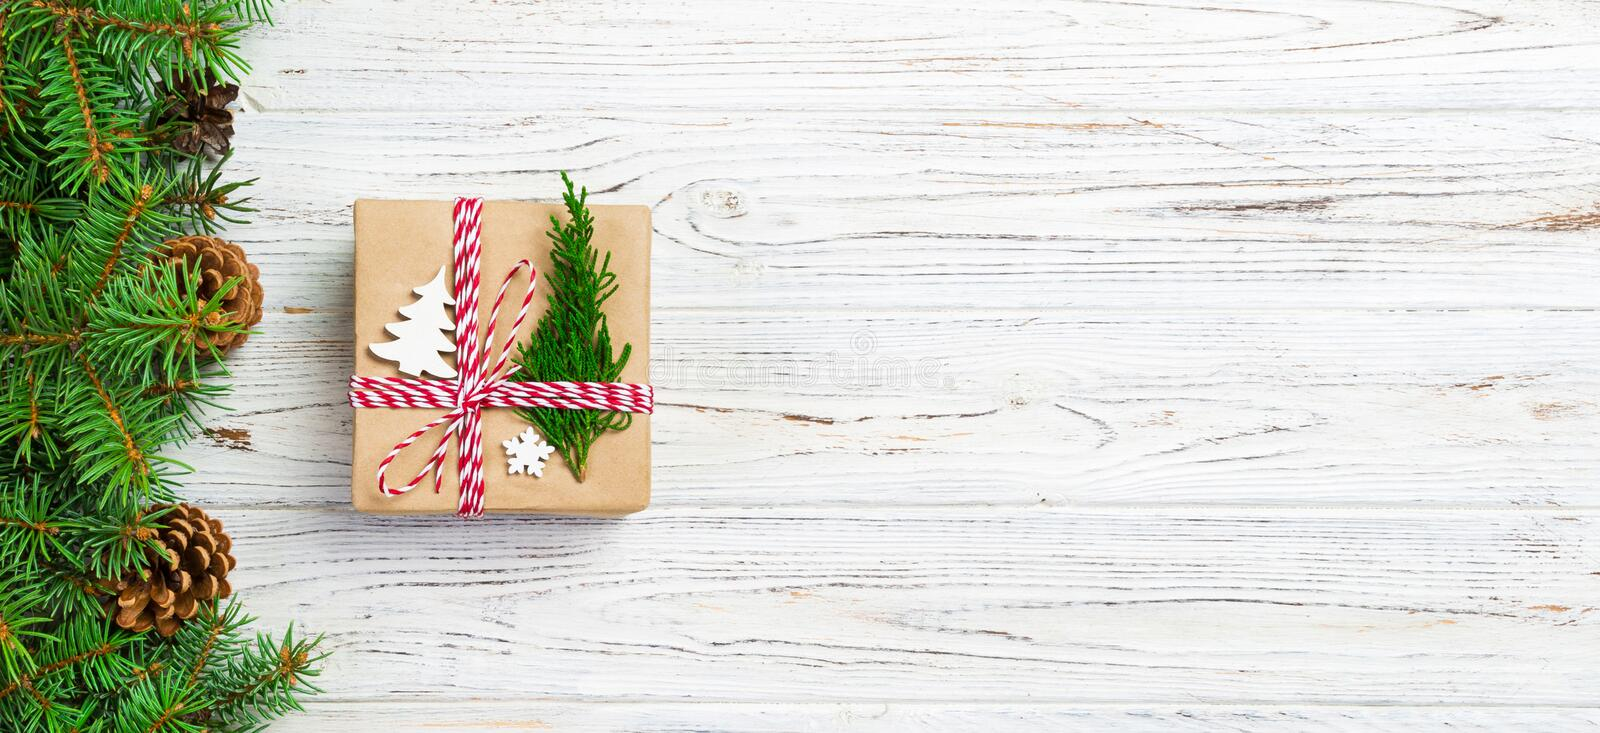 Christmas gift box wrapped in recycled paper, with ribbon bow, with ribbon on rustic background. Holiday banner concept.  stock photos